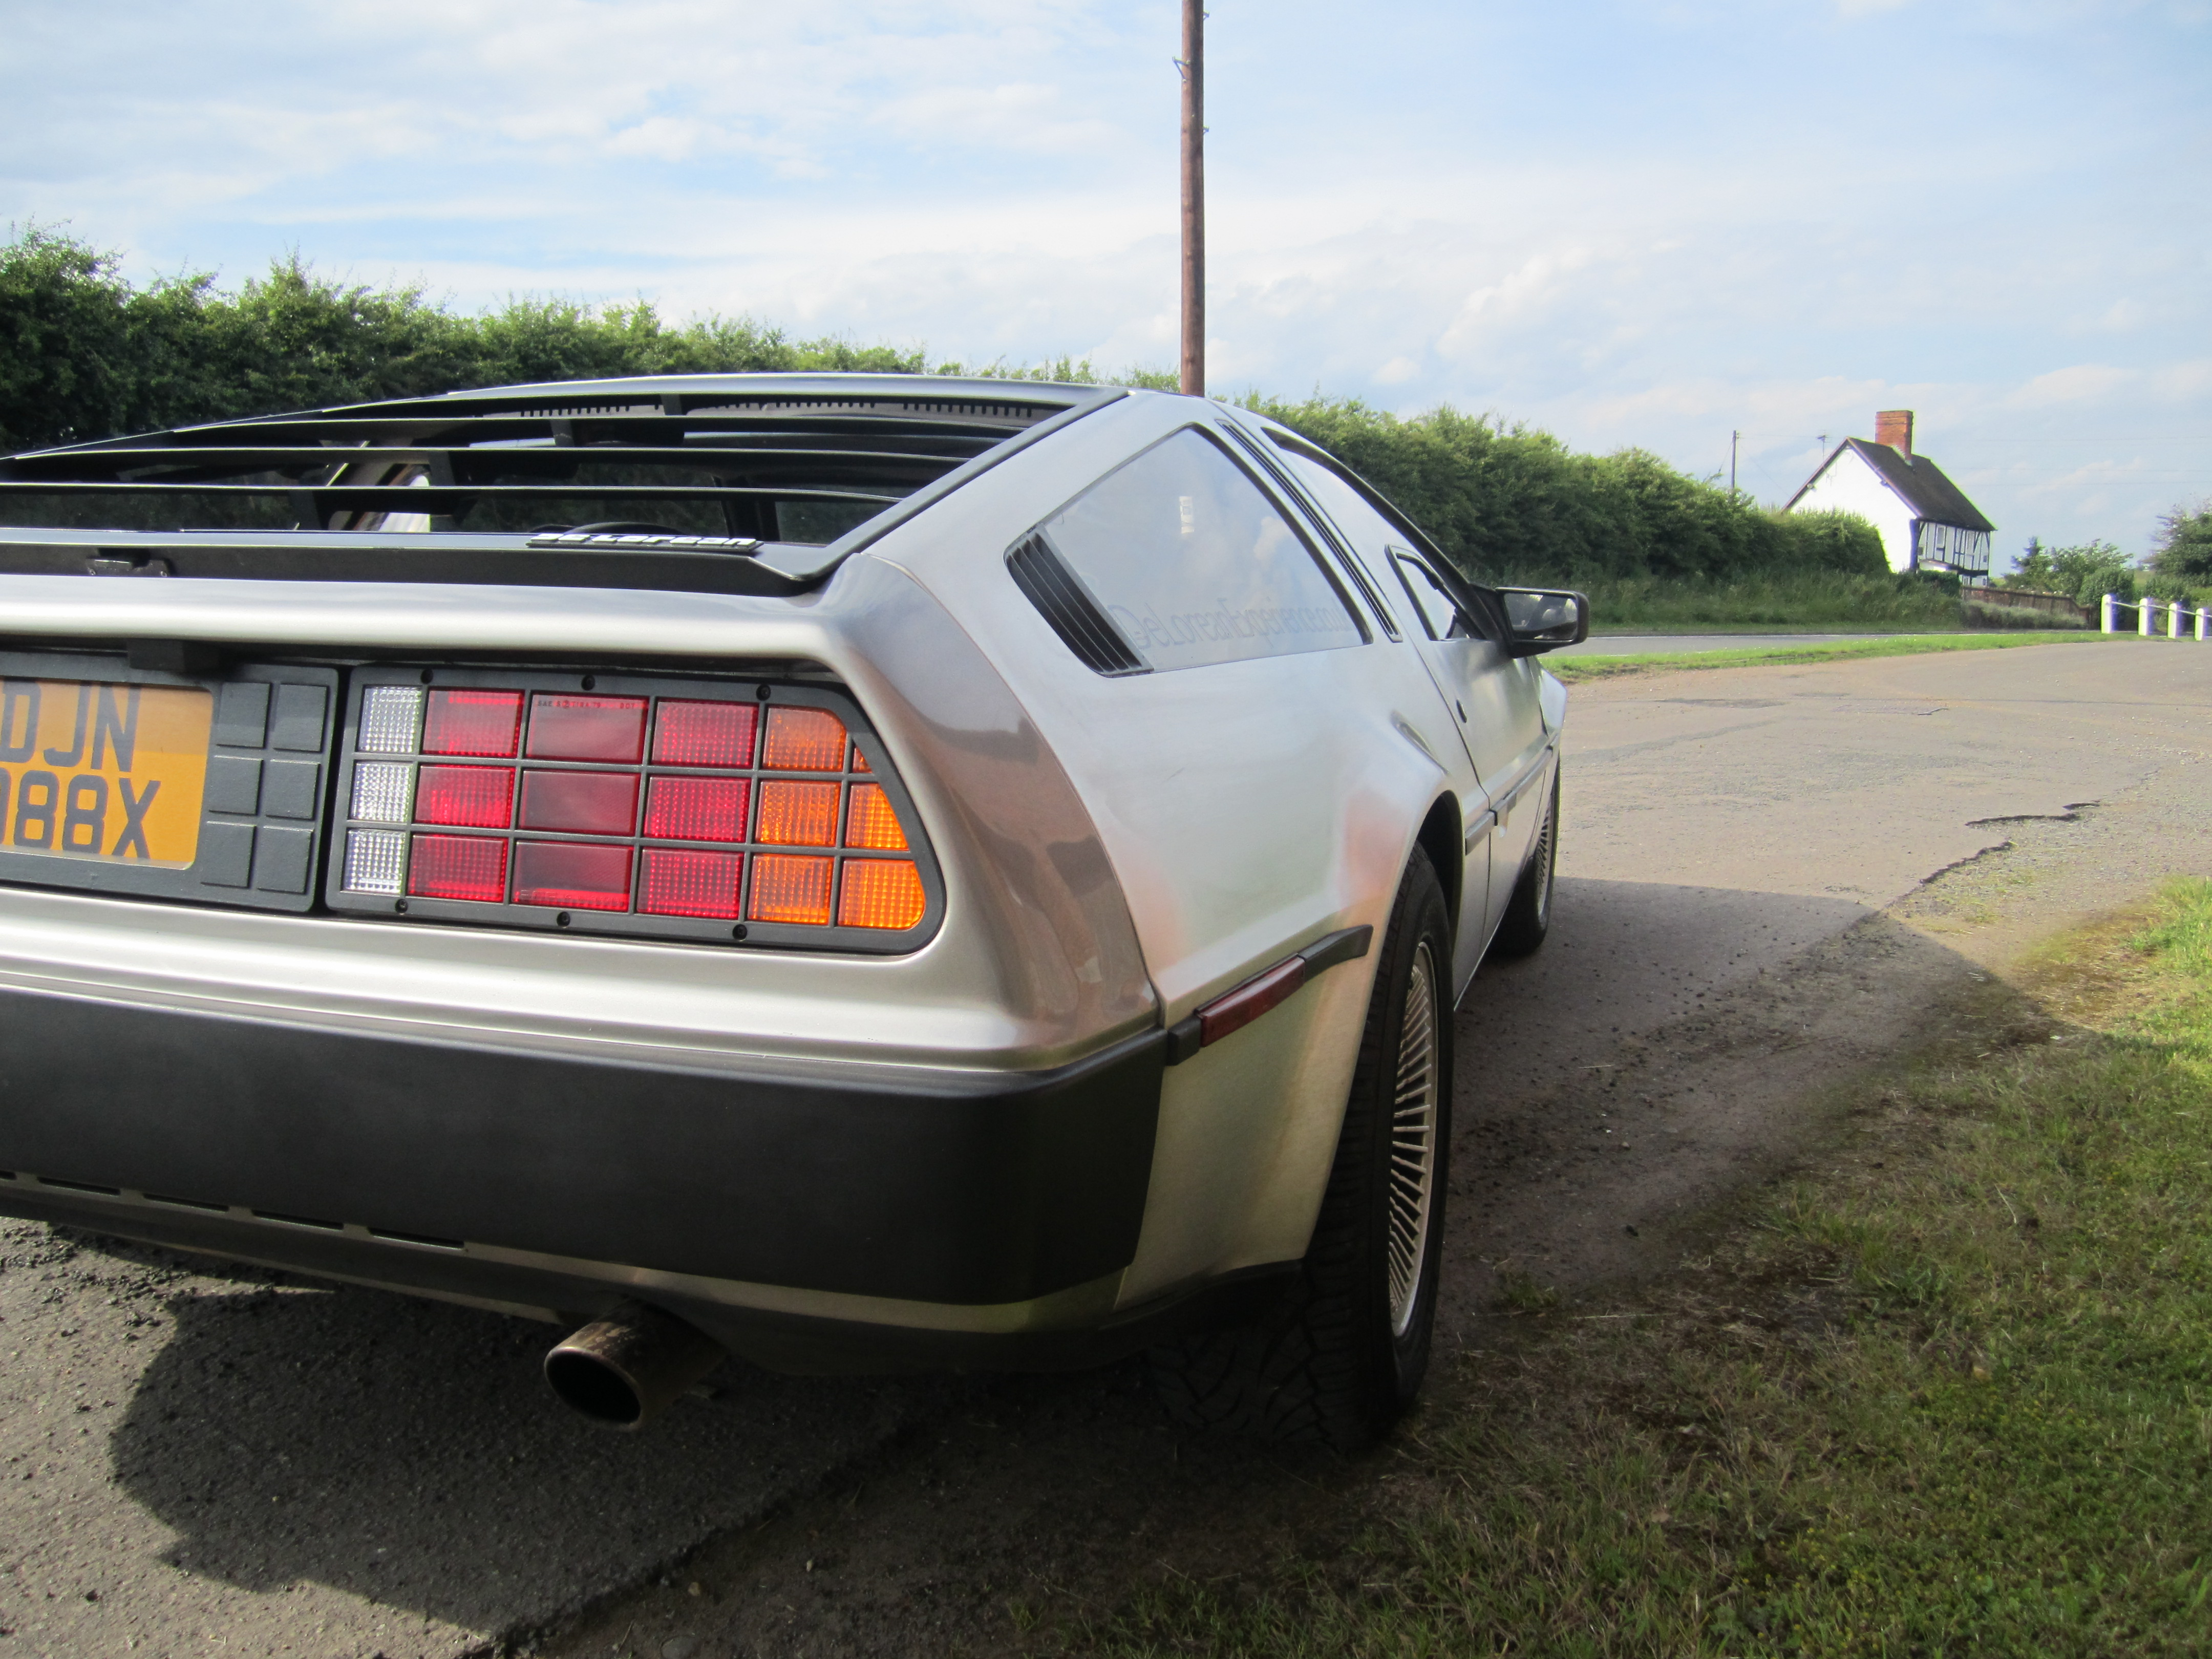 The Delorean DMC 12 is a great car to drive